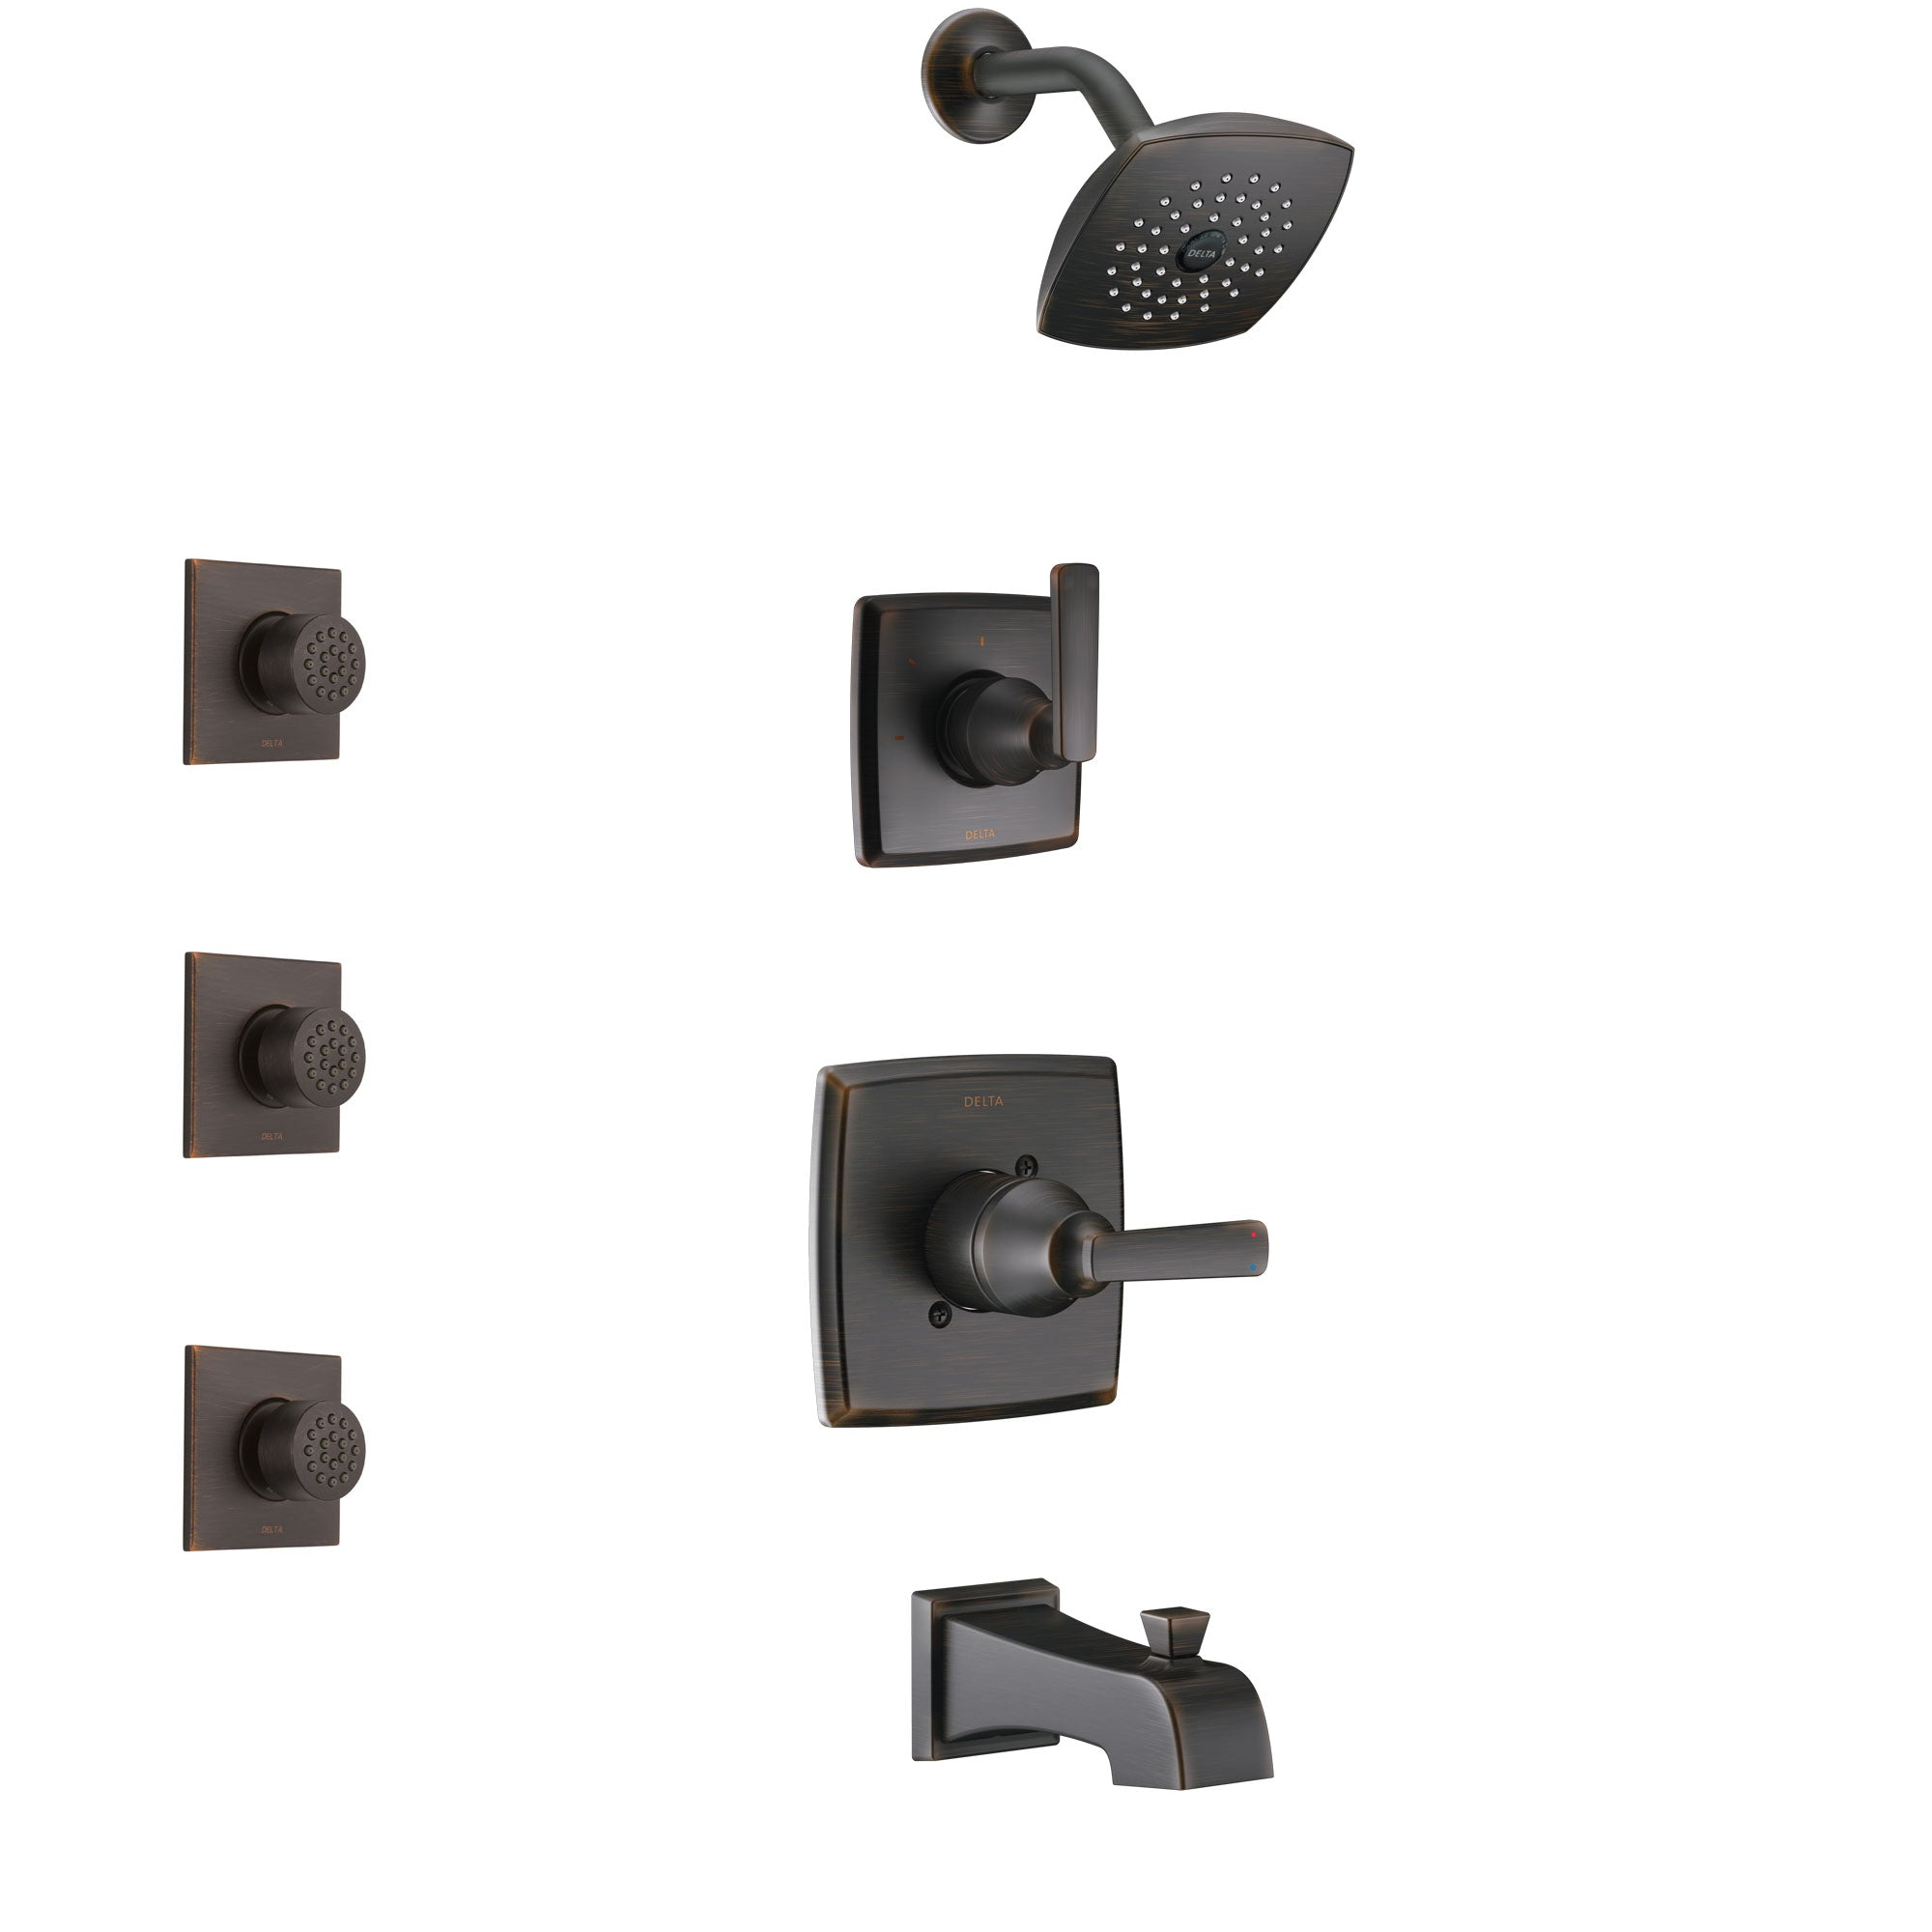 Delta Ashlyn Venetian Bronze Finish Tub and Shower System with Control Handle, 3-Setting Diverter, Showerhead, and 3 Body Sprays SS14464RB2